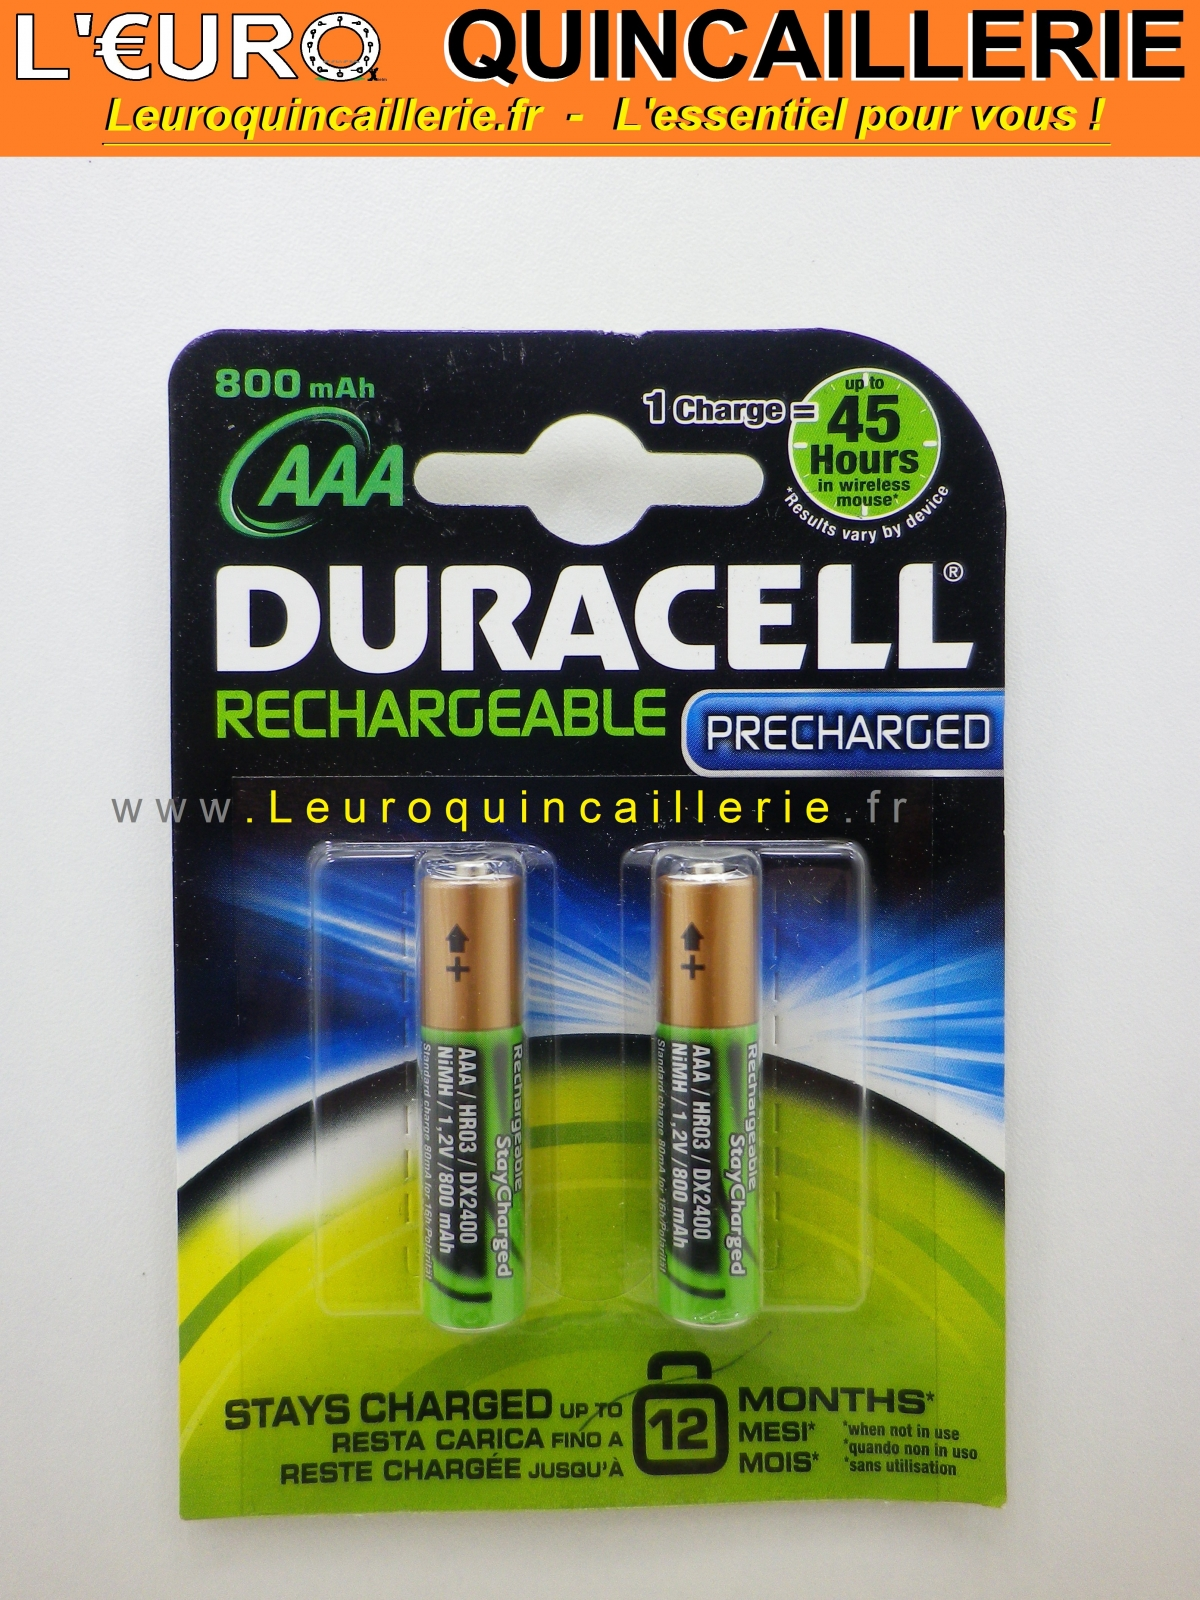 2 piles rechargeable aaa duracel pr charg 800 mah piles piles rechargeable. Black Bedroom Furniture Sets. Home Design Ideas